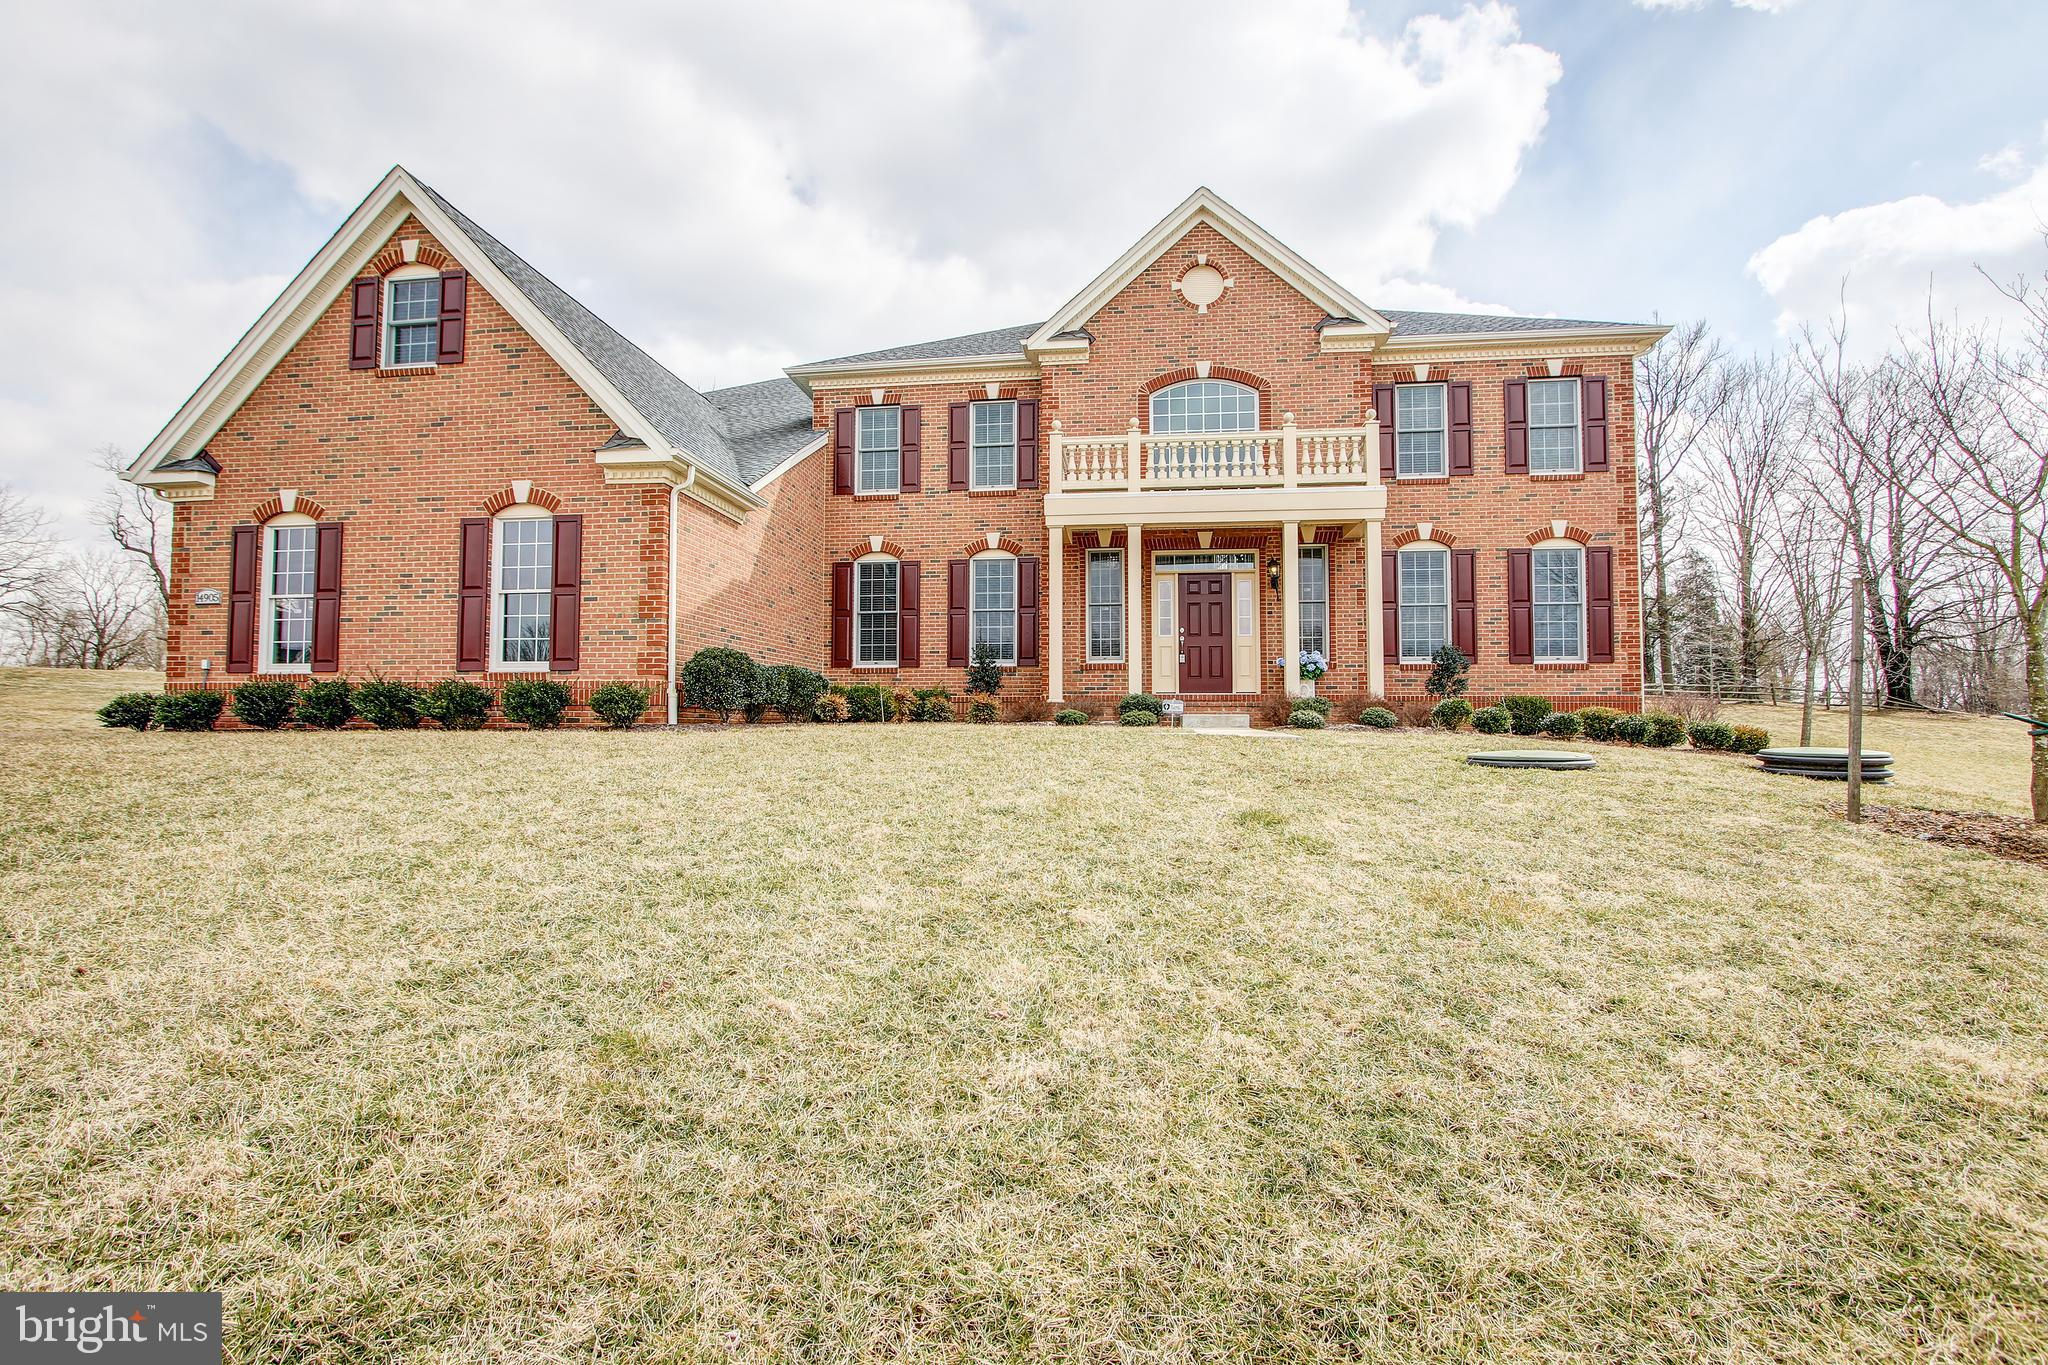 14905 MERIWETHER DRIVE, GLENELG, MD 21737